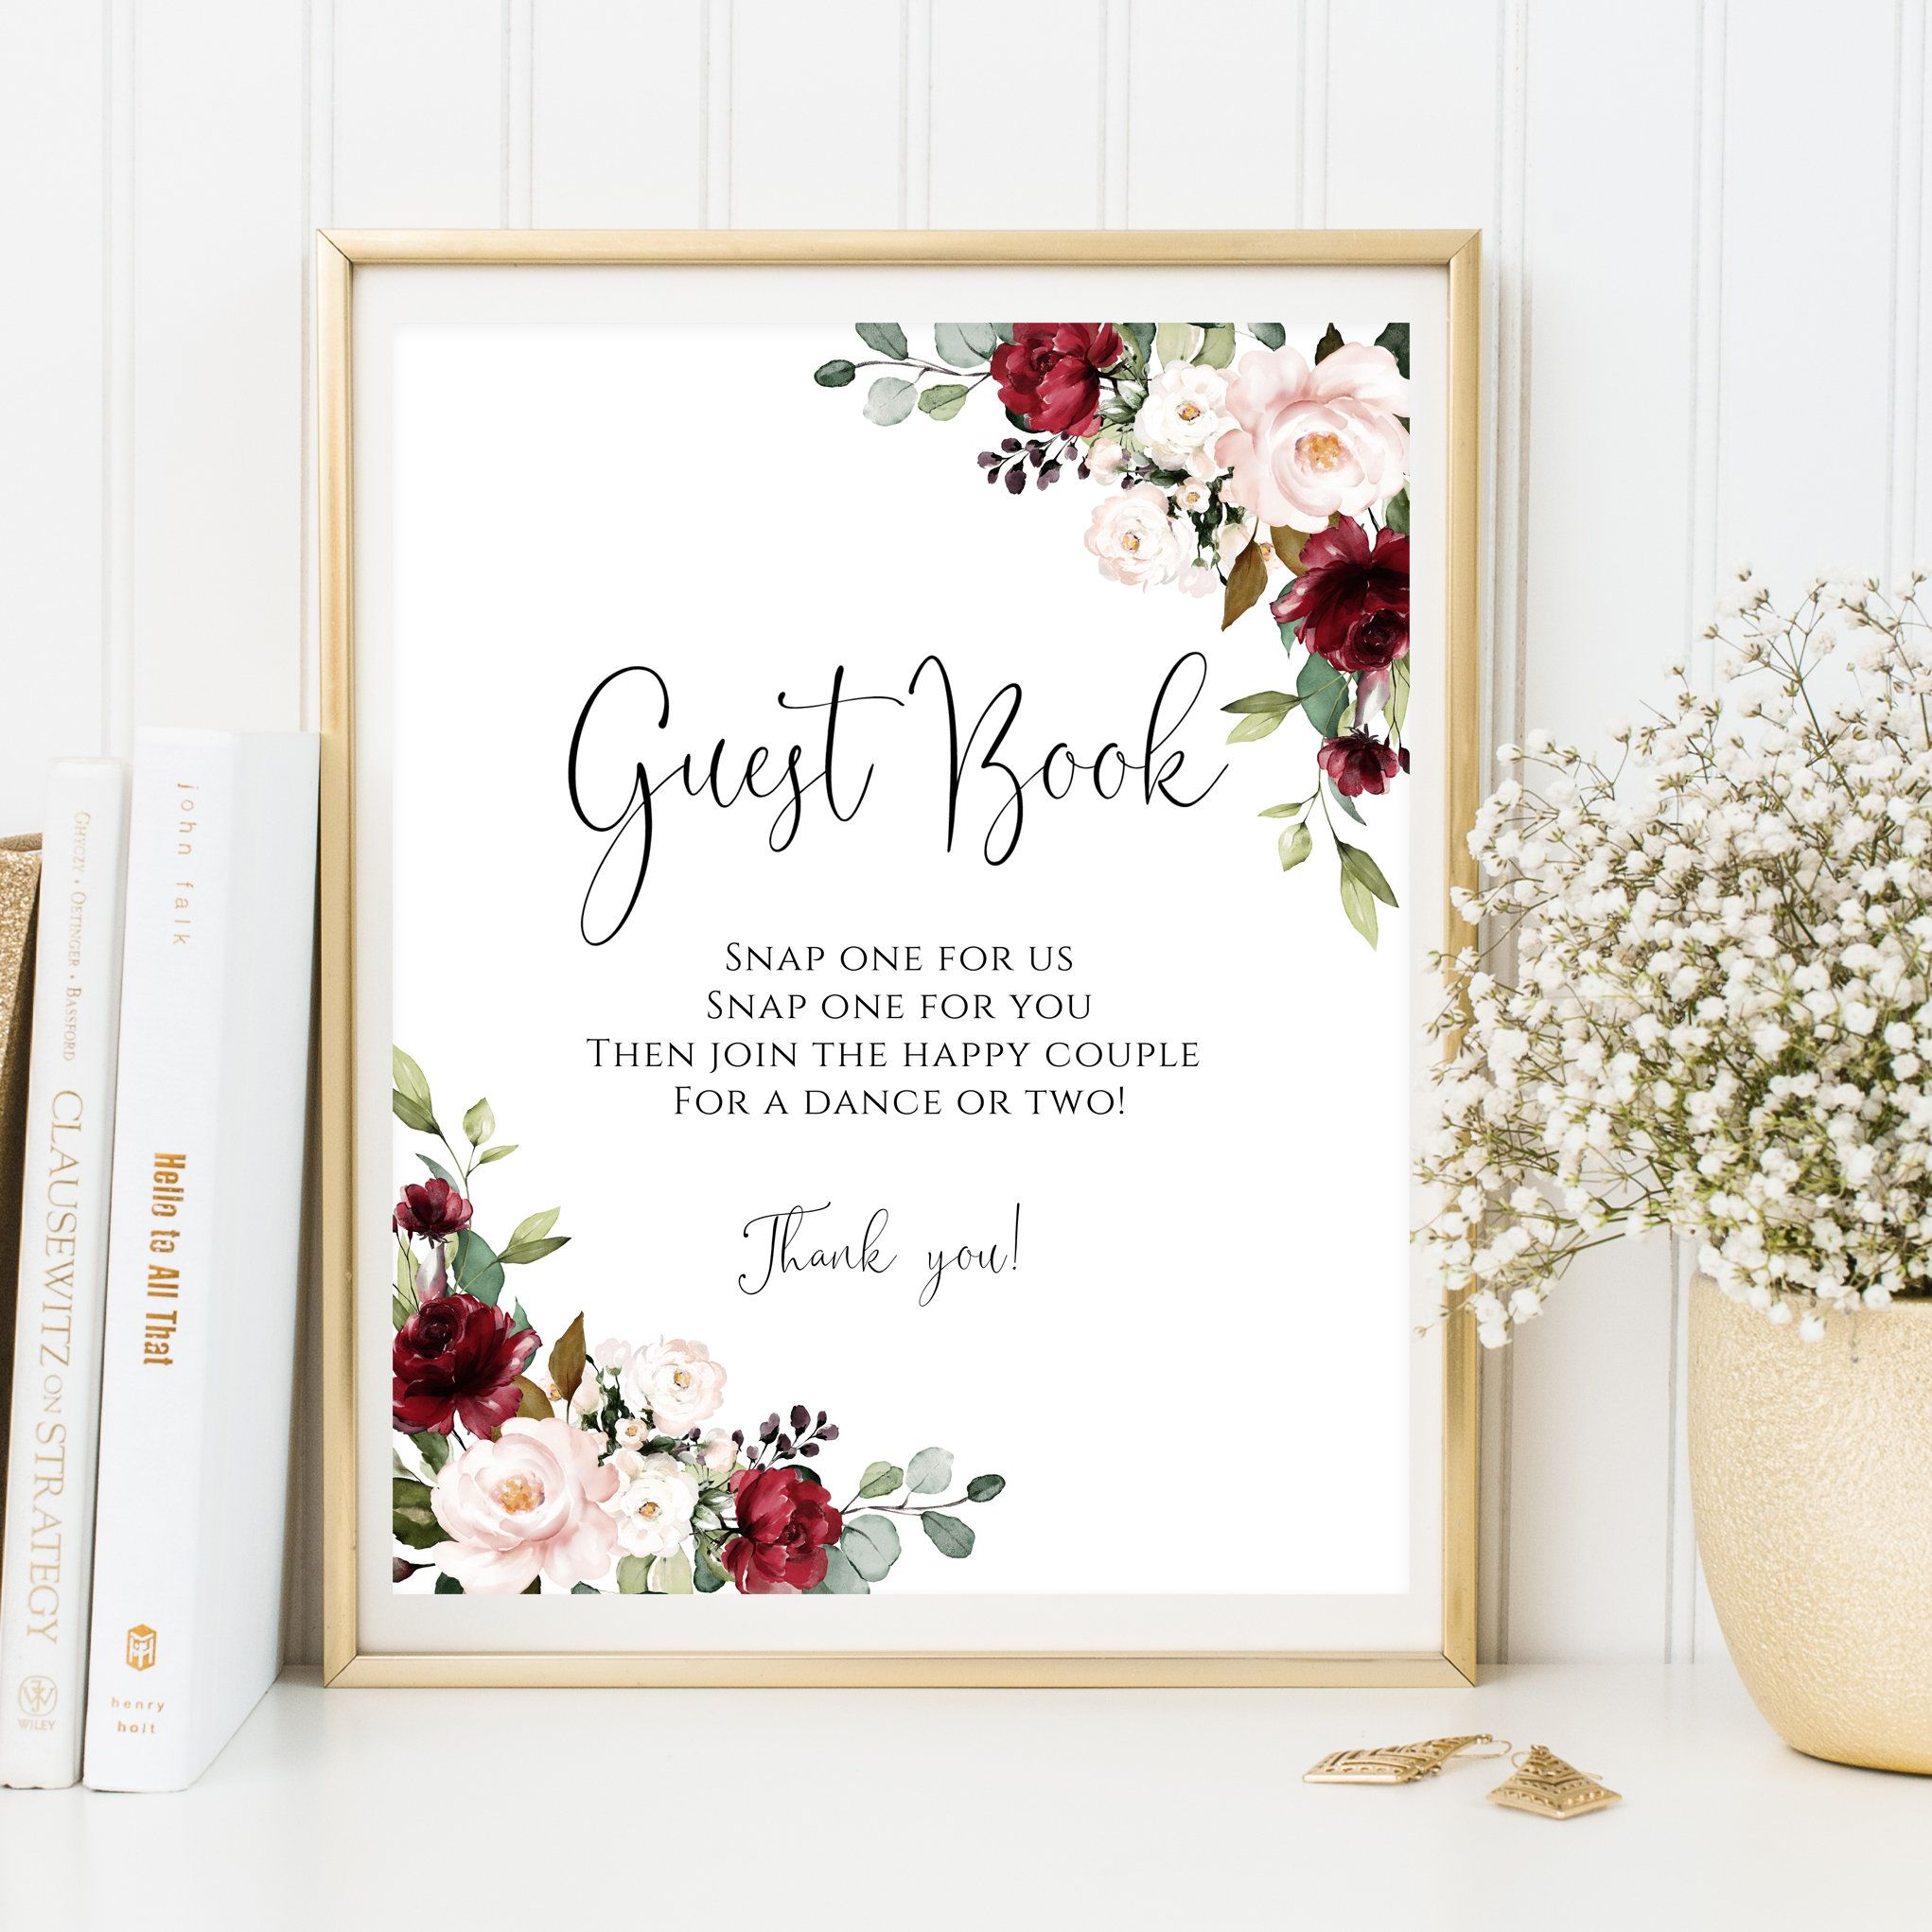 Burgundy Wedding Guest Book Sign Template, Printable Guest Book Sign, Guest Book Sign, Snap signs, Please Sign, PDF Instant Download, #excelwordaccessetc